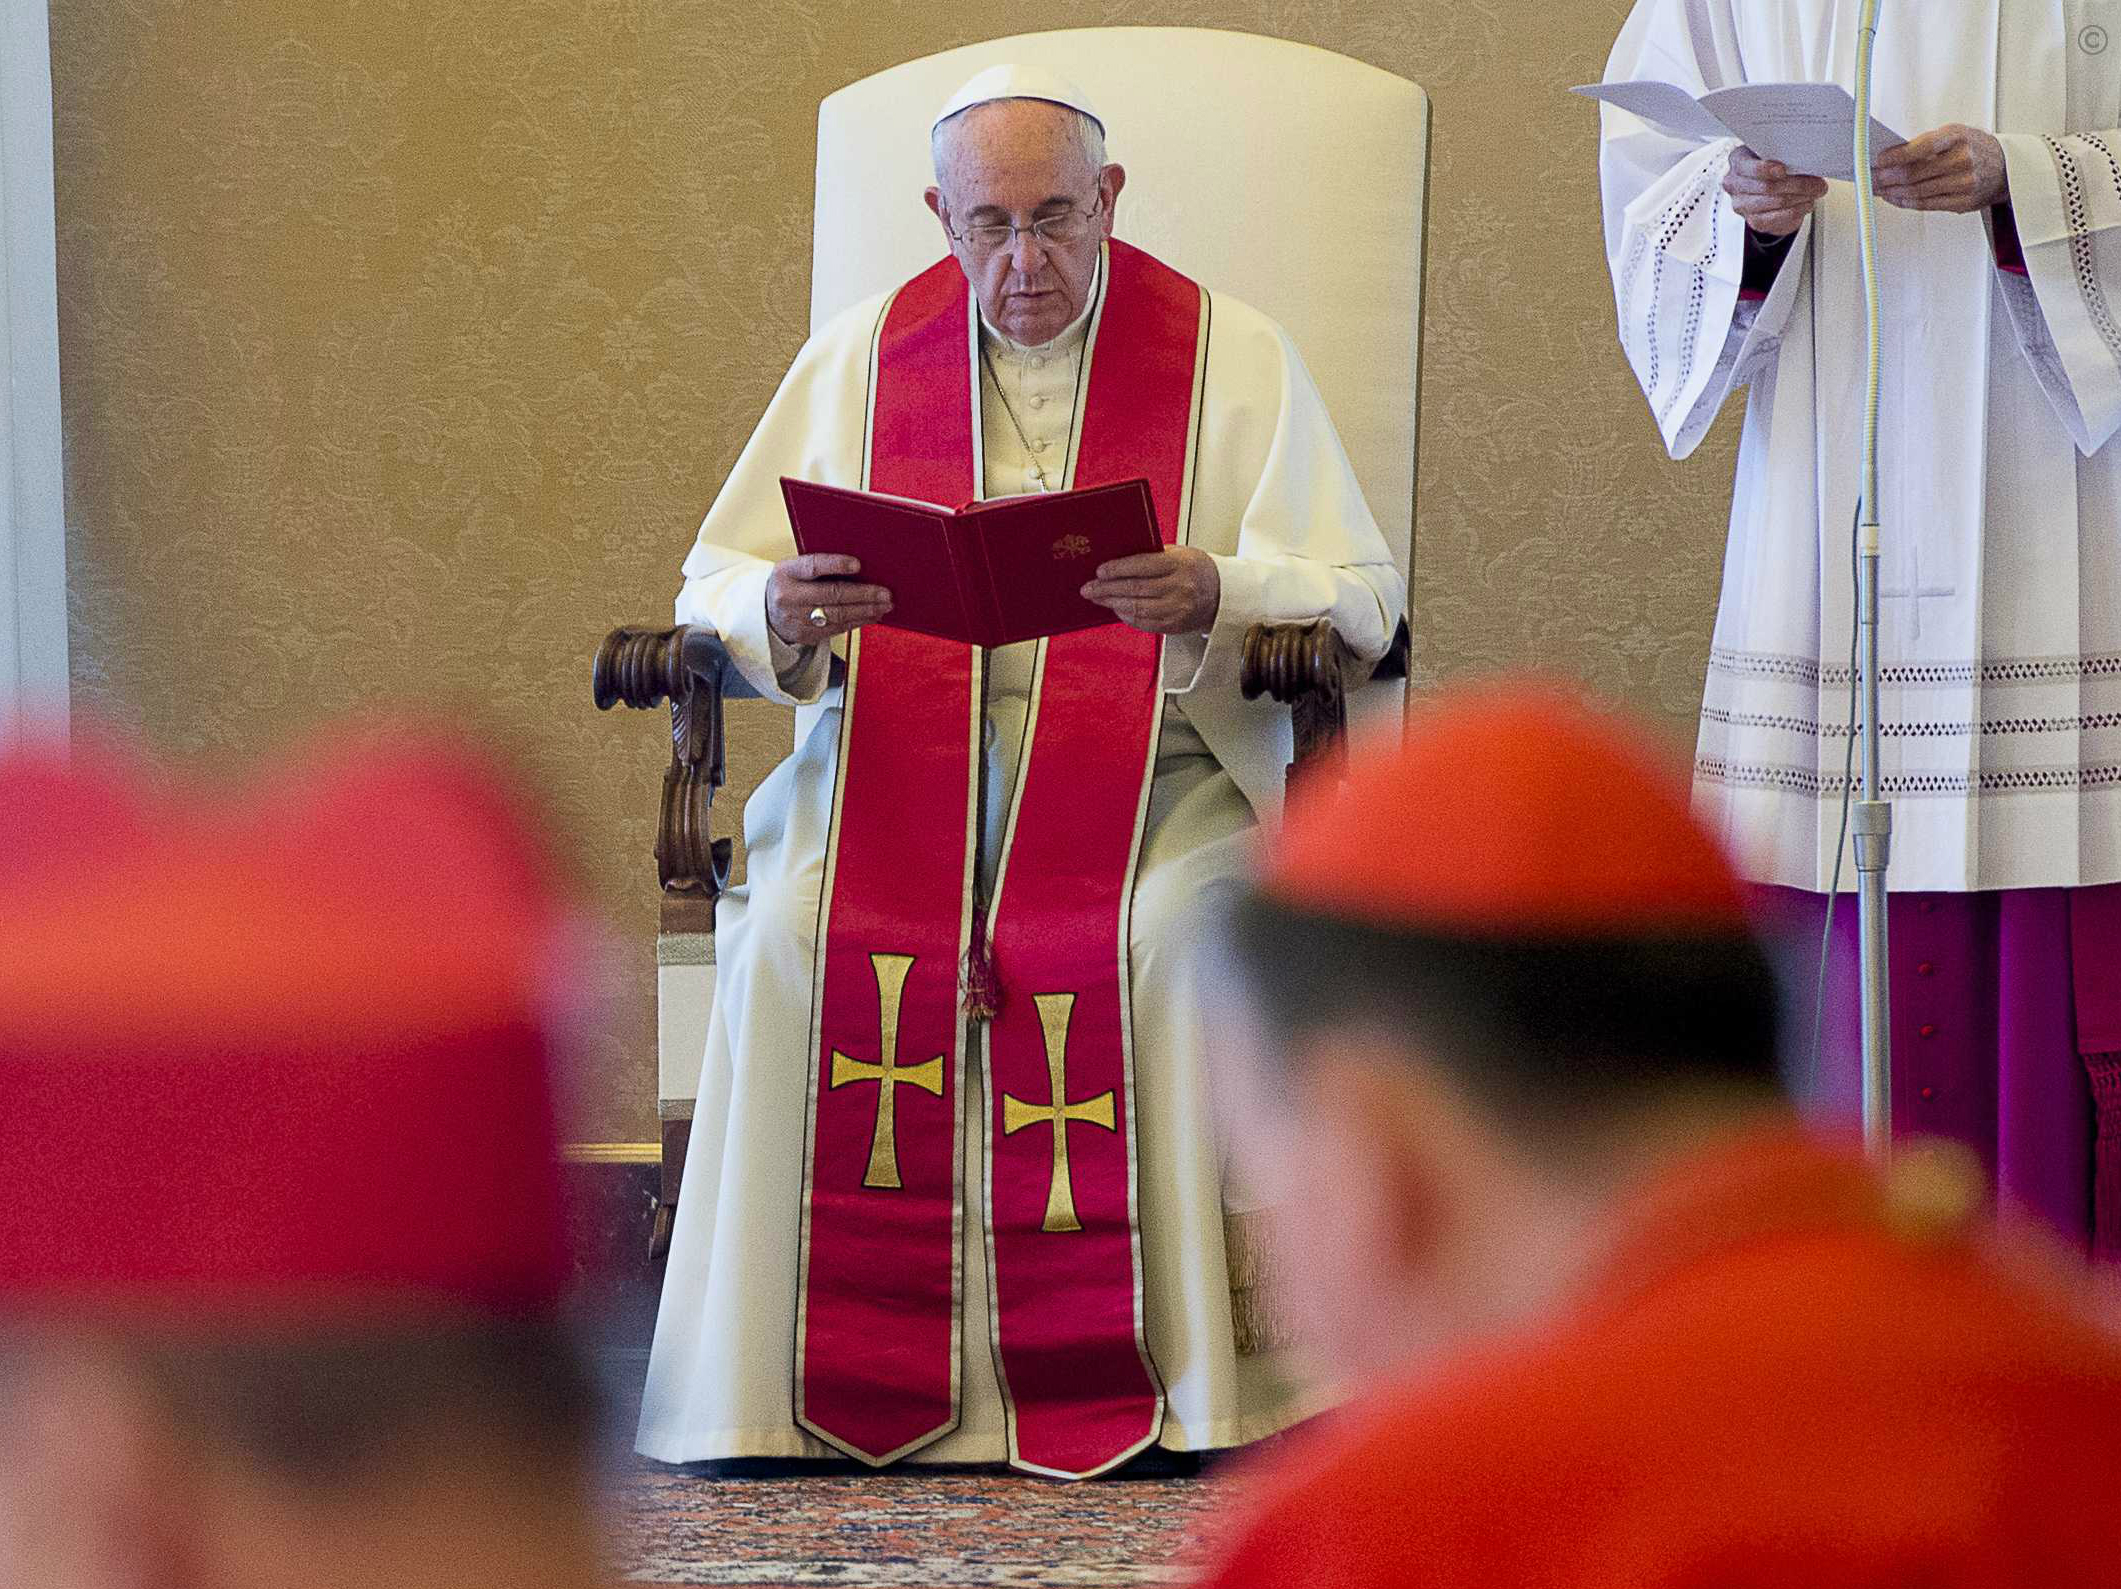 Pope Francis during the Ordinary Consistory in the Apostolic Palace of the Vatican